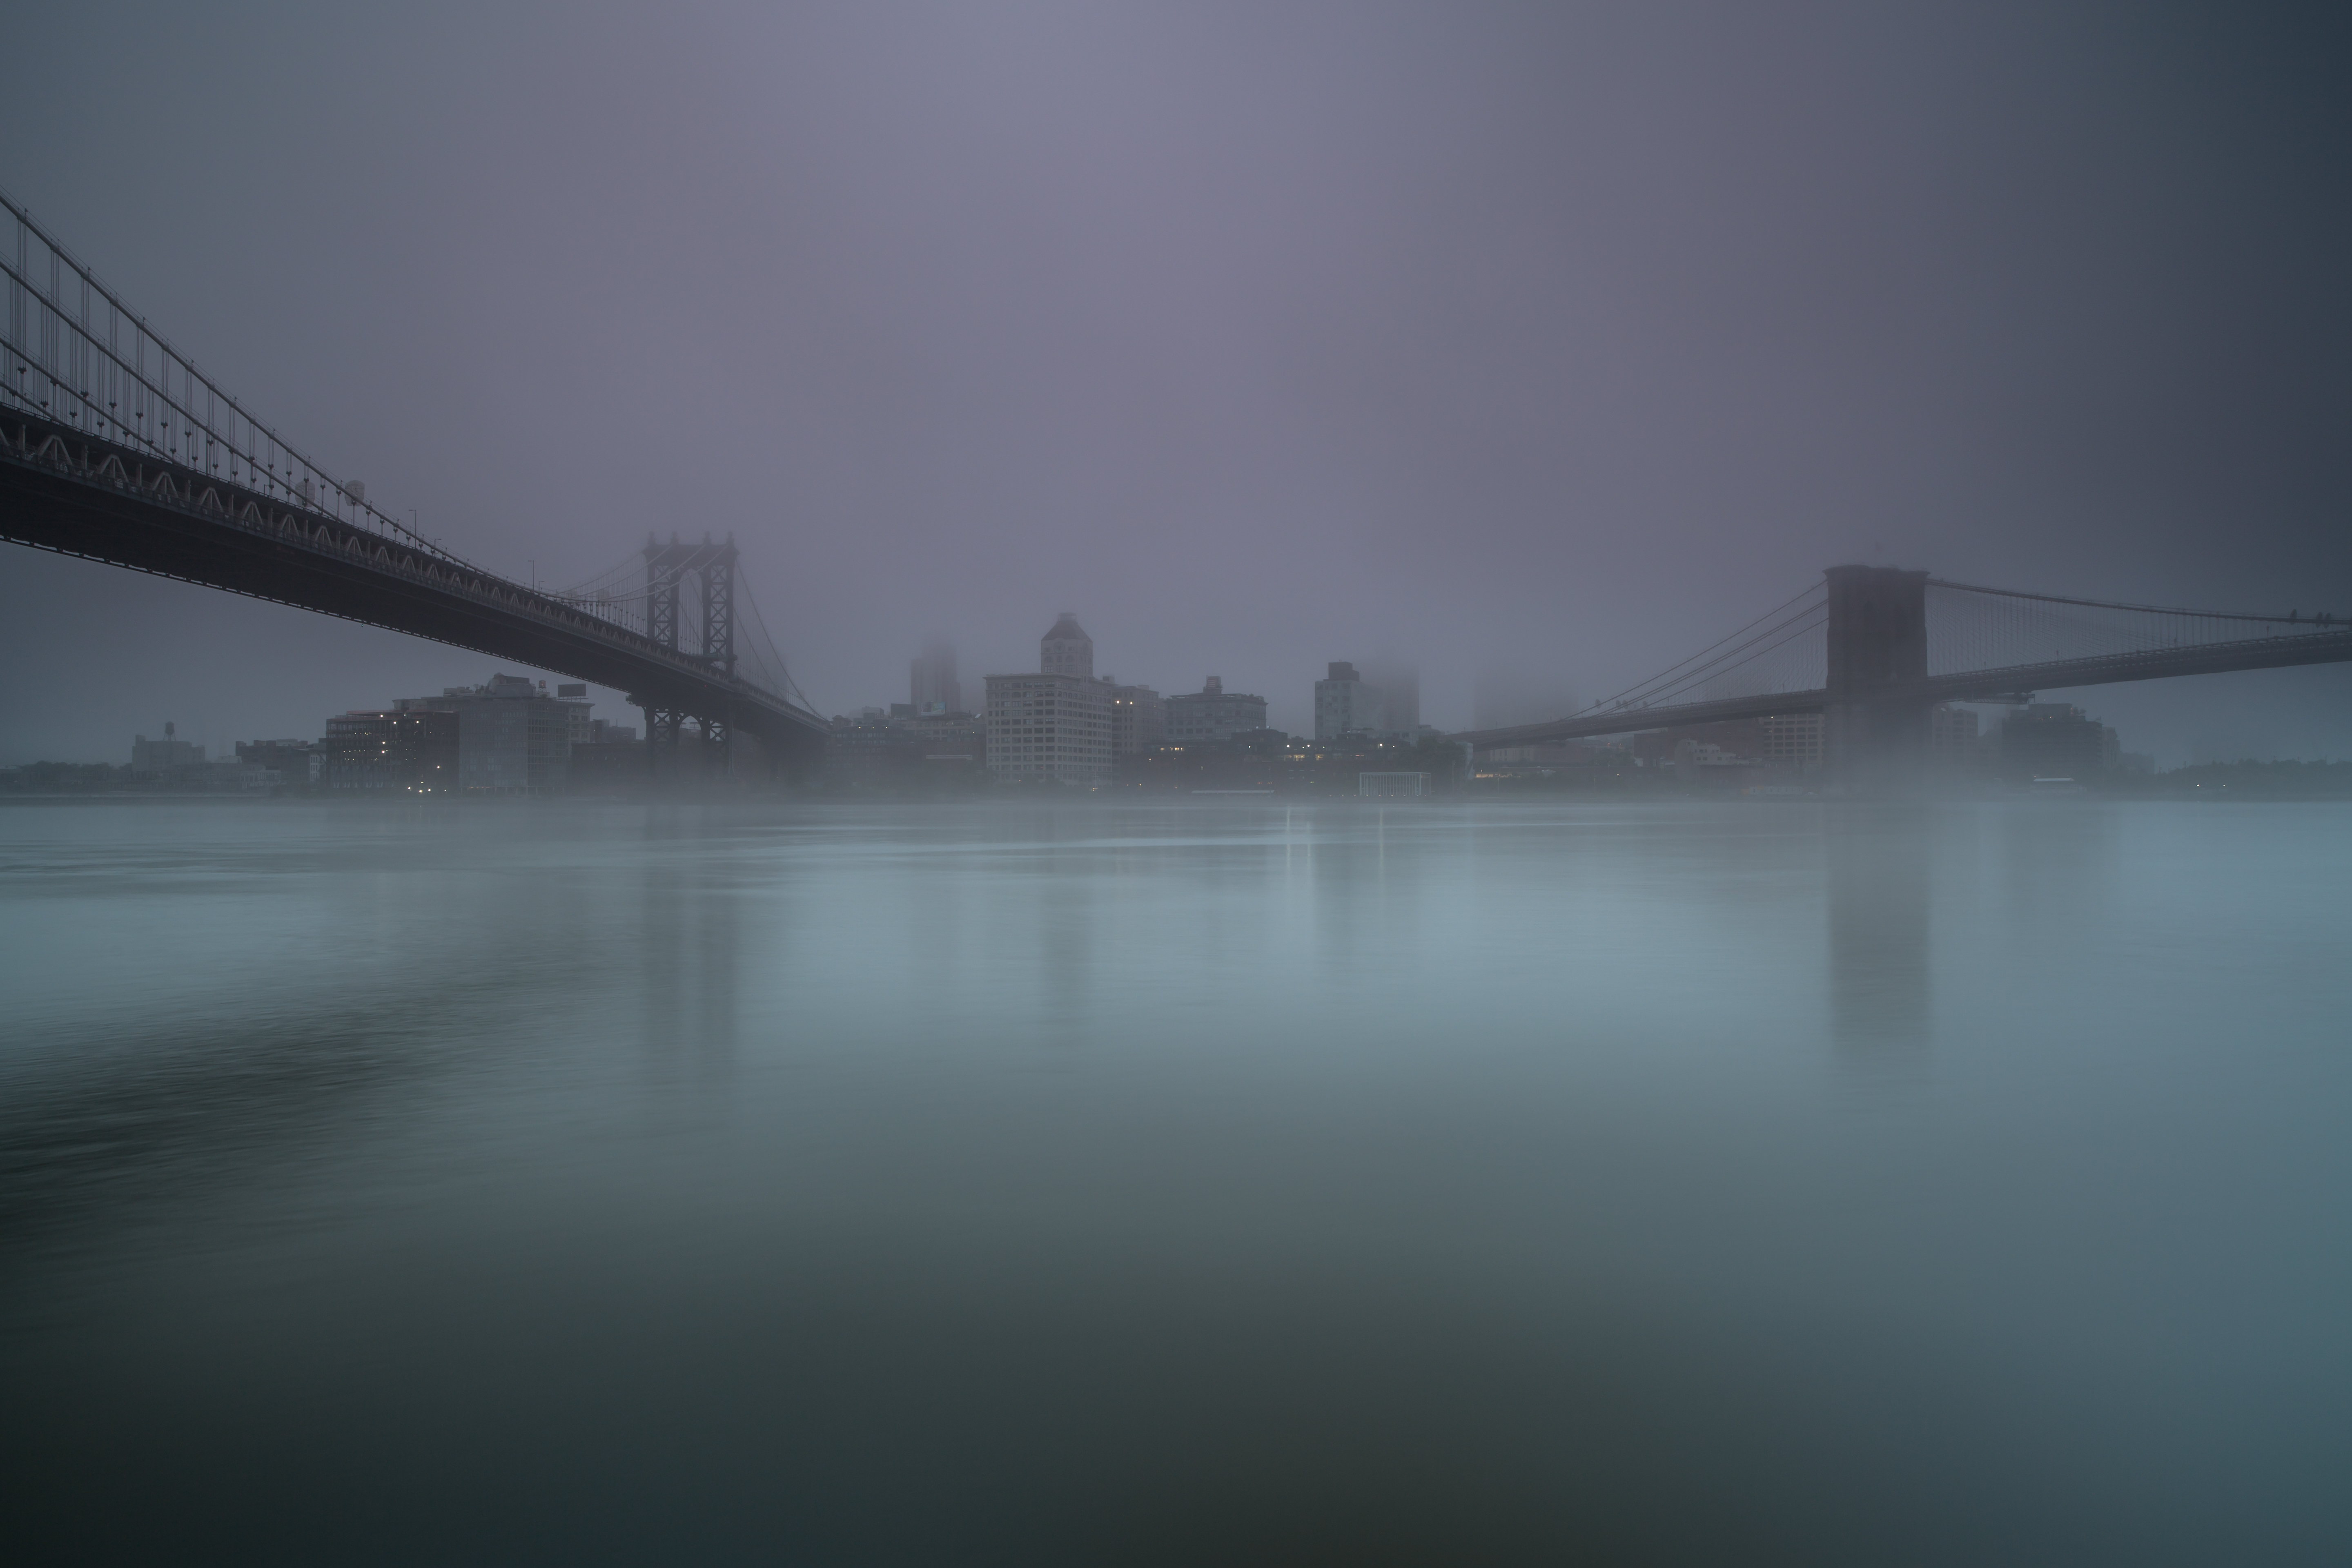 Foggy morning in Manhattan example image 1